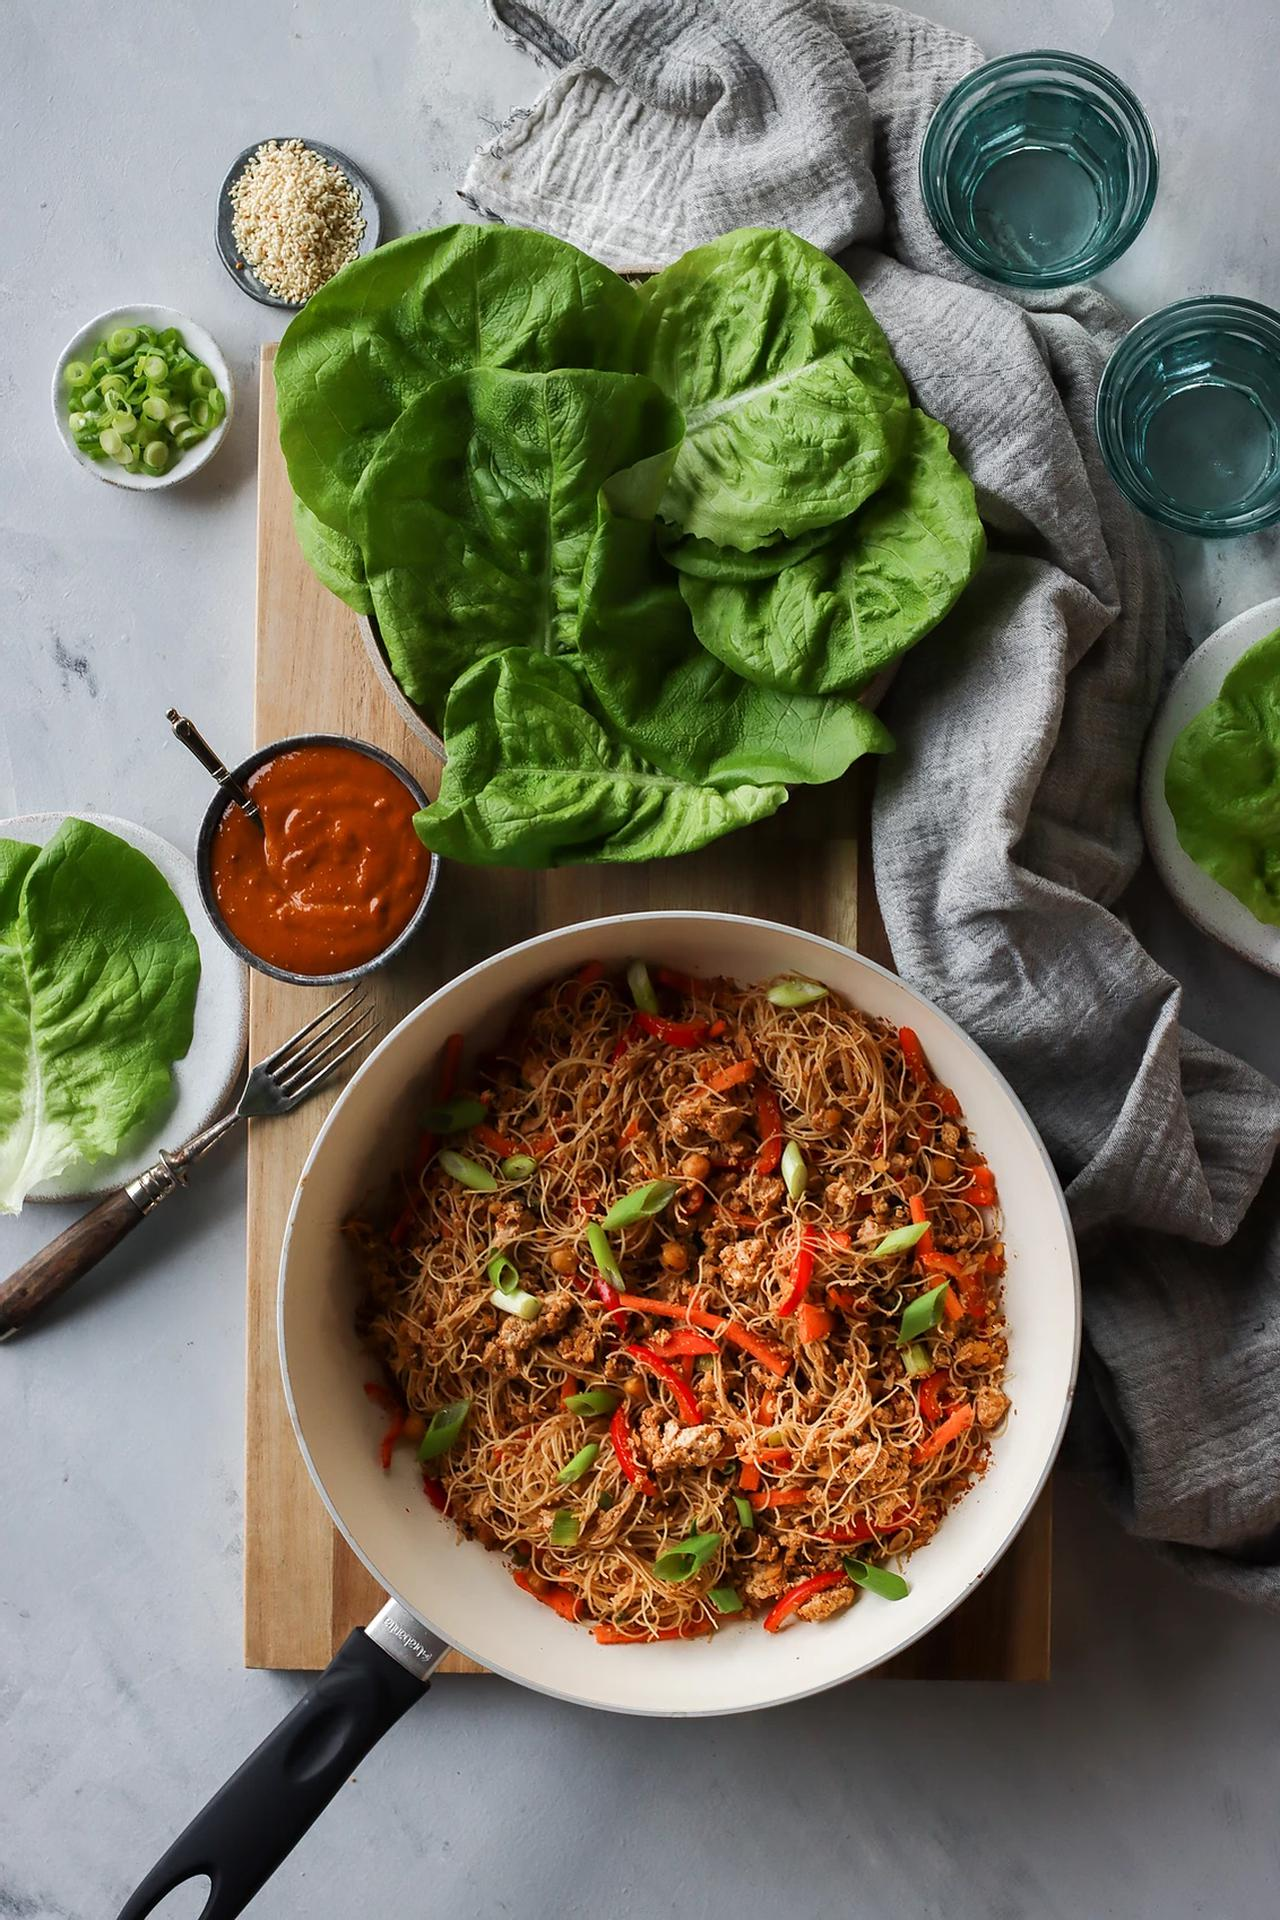 Main image of High Protein Lettuce Wraps with Creamy Peanut Sauce